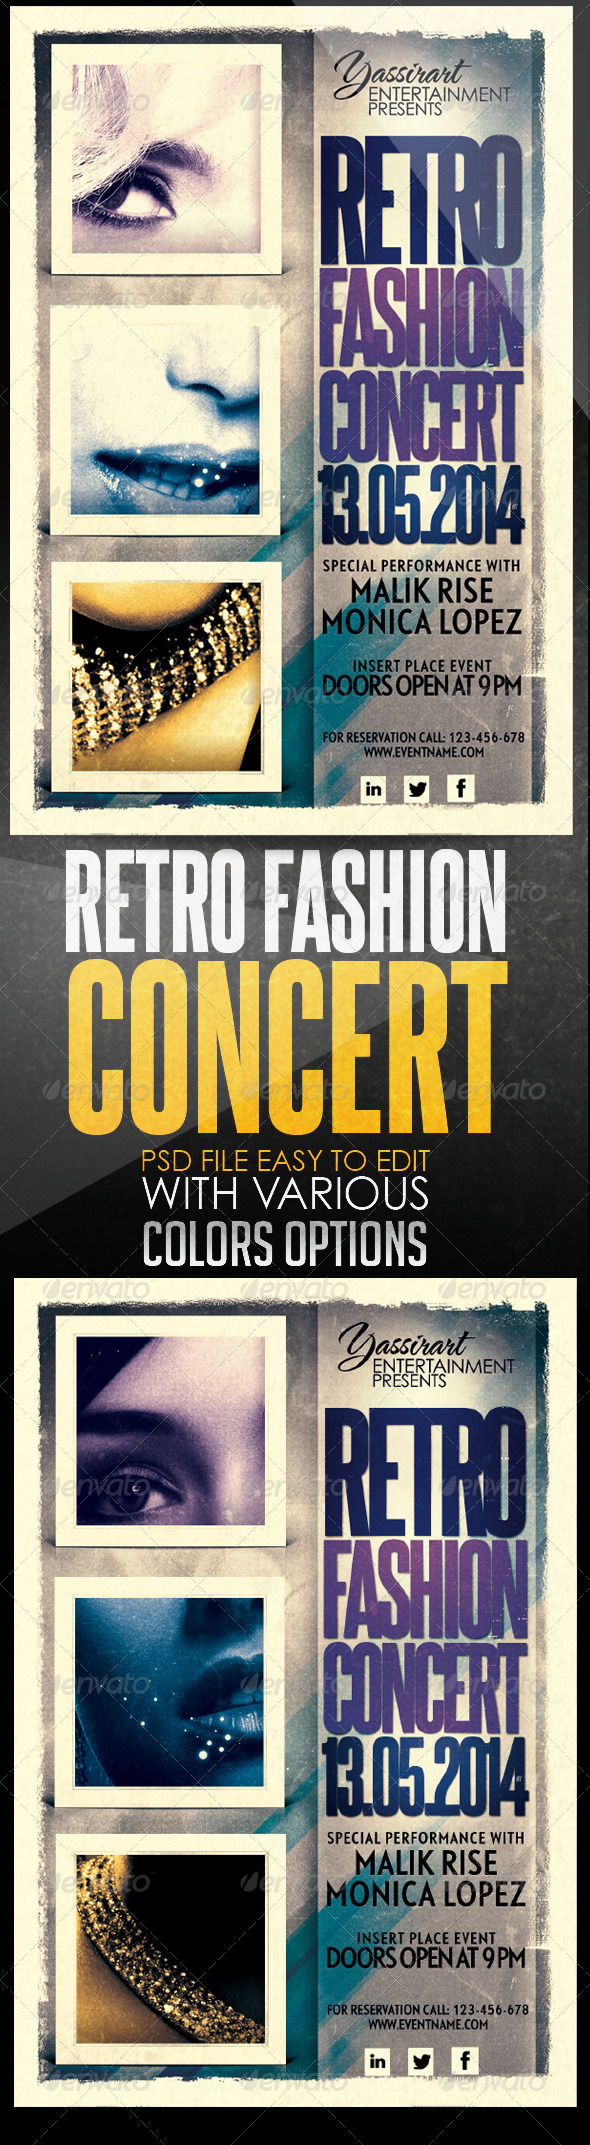 Retro Fashion Concert Flyer Template - Clubs & Parties Events